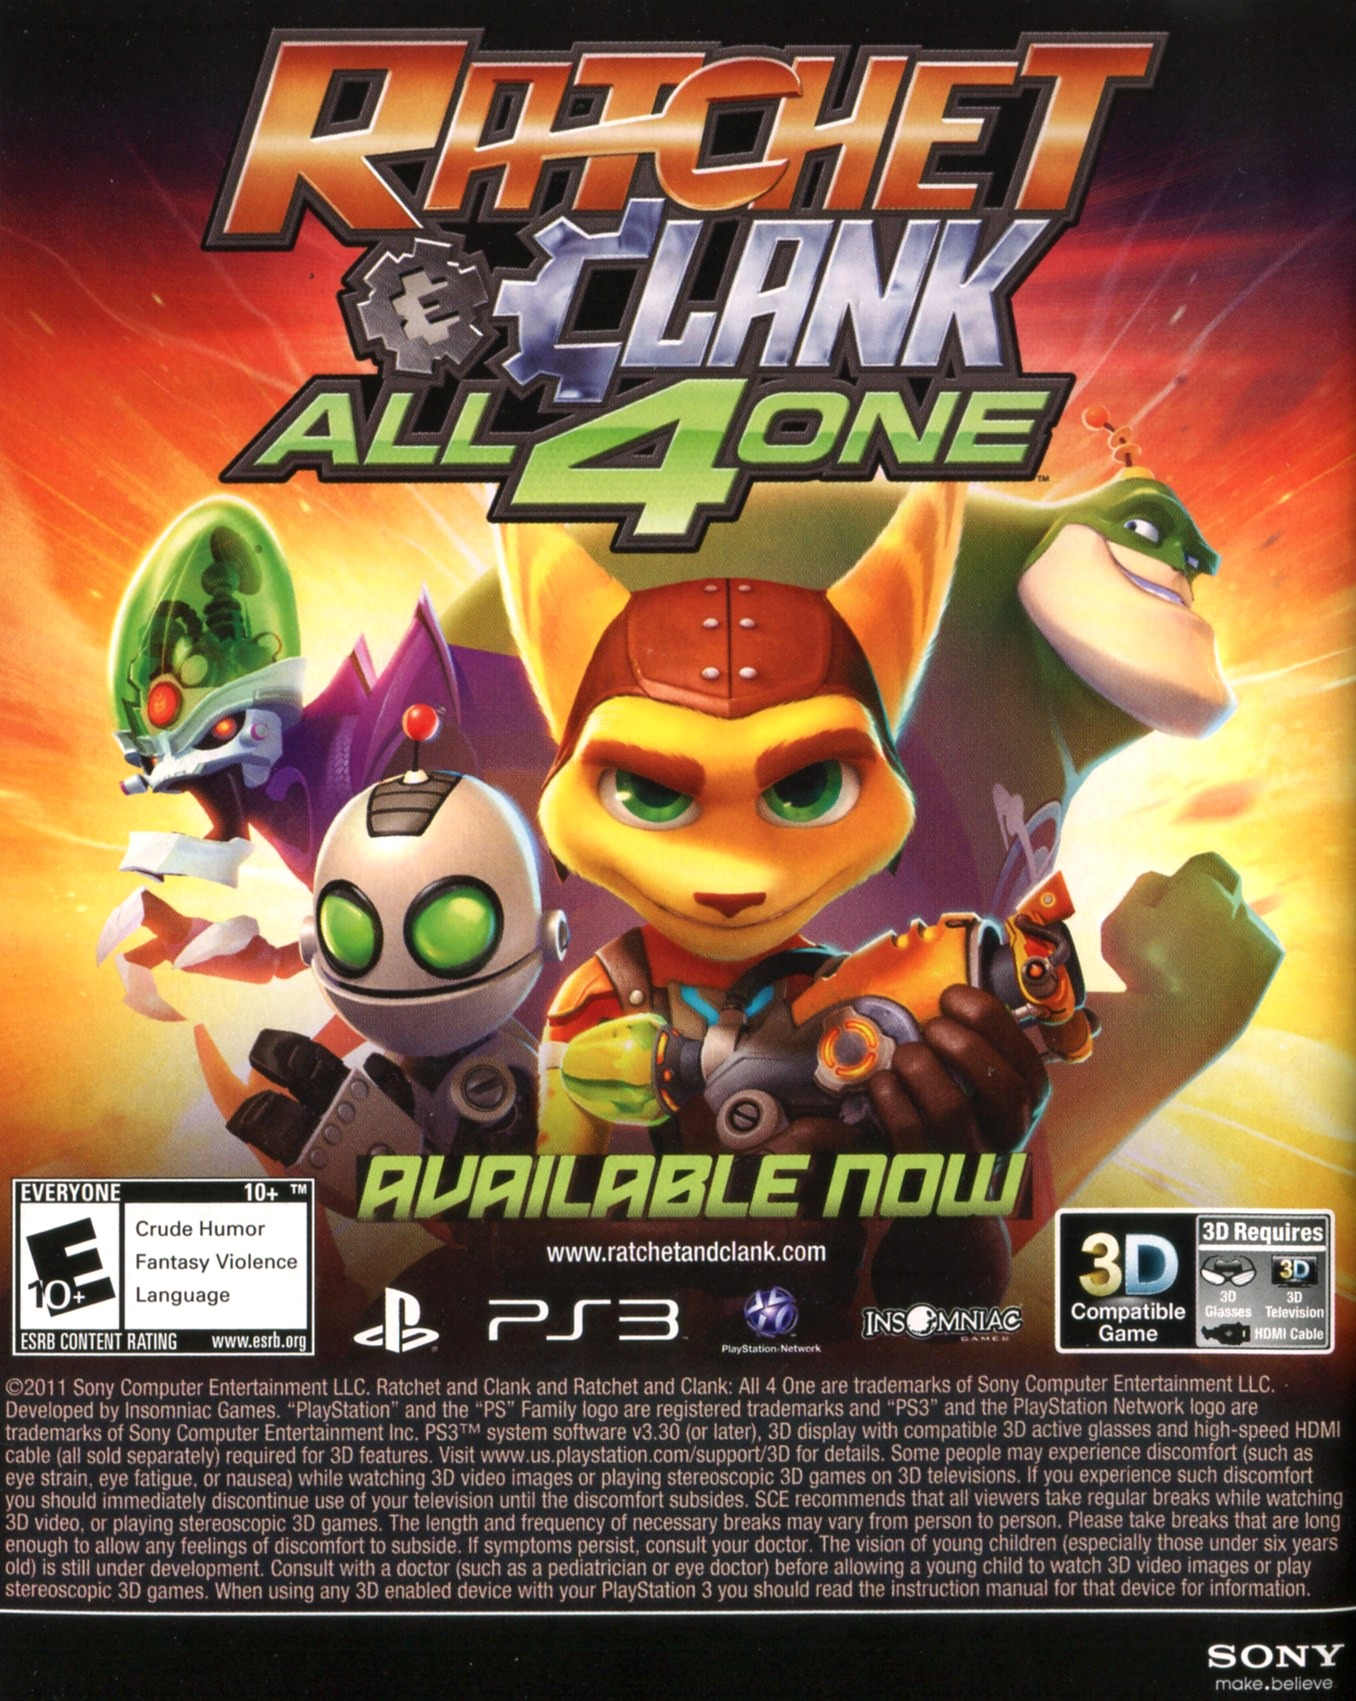 Ratchet Clank All 4 One 2011 Promotional Art Mobygames